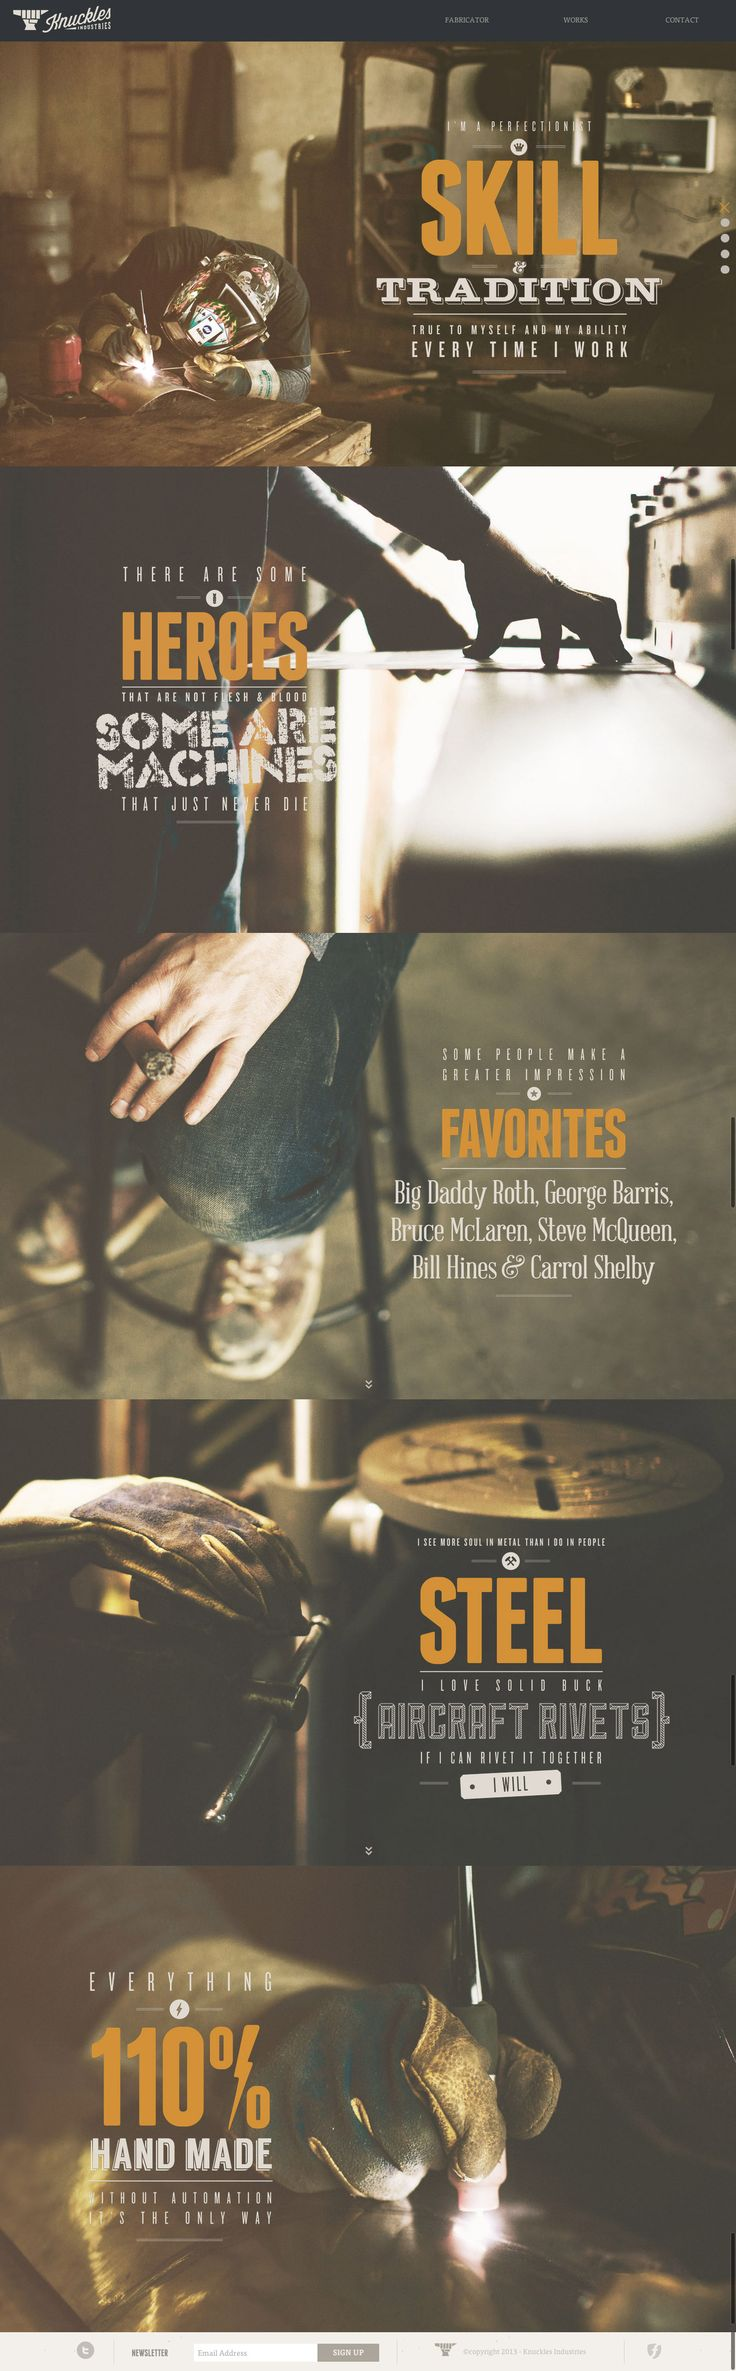 Knuckles Industries | Best Web #Design #Inspiration - Luv the font, color, treatments, use of typography elements.  ~cam